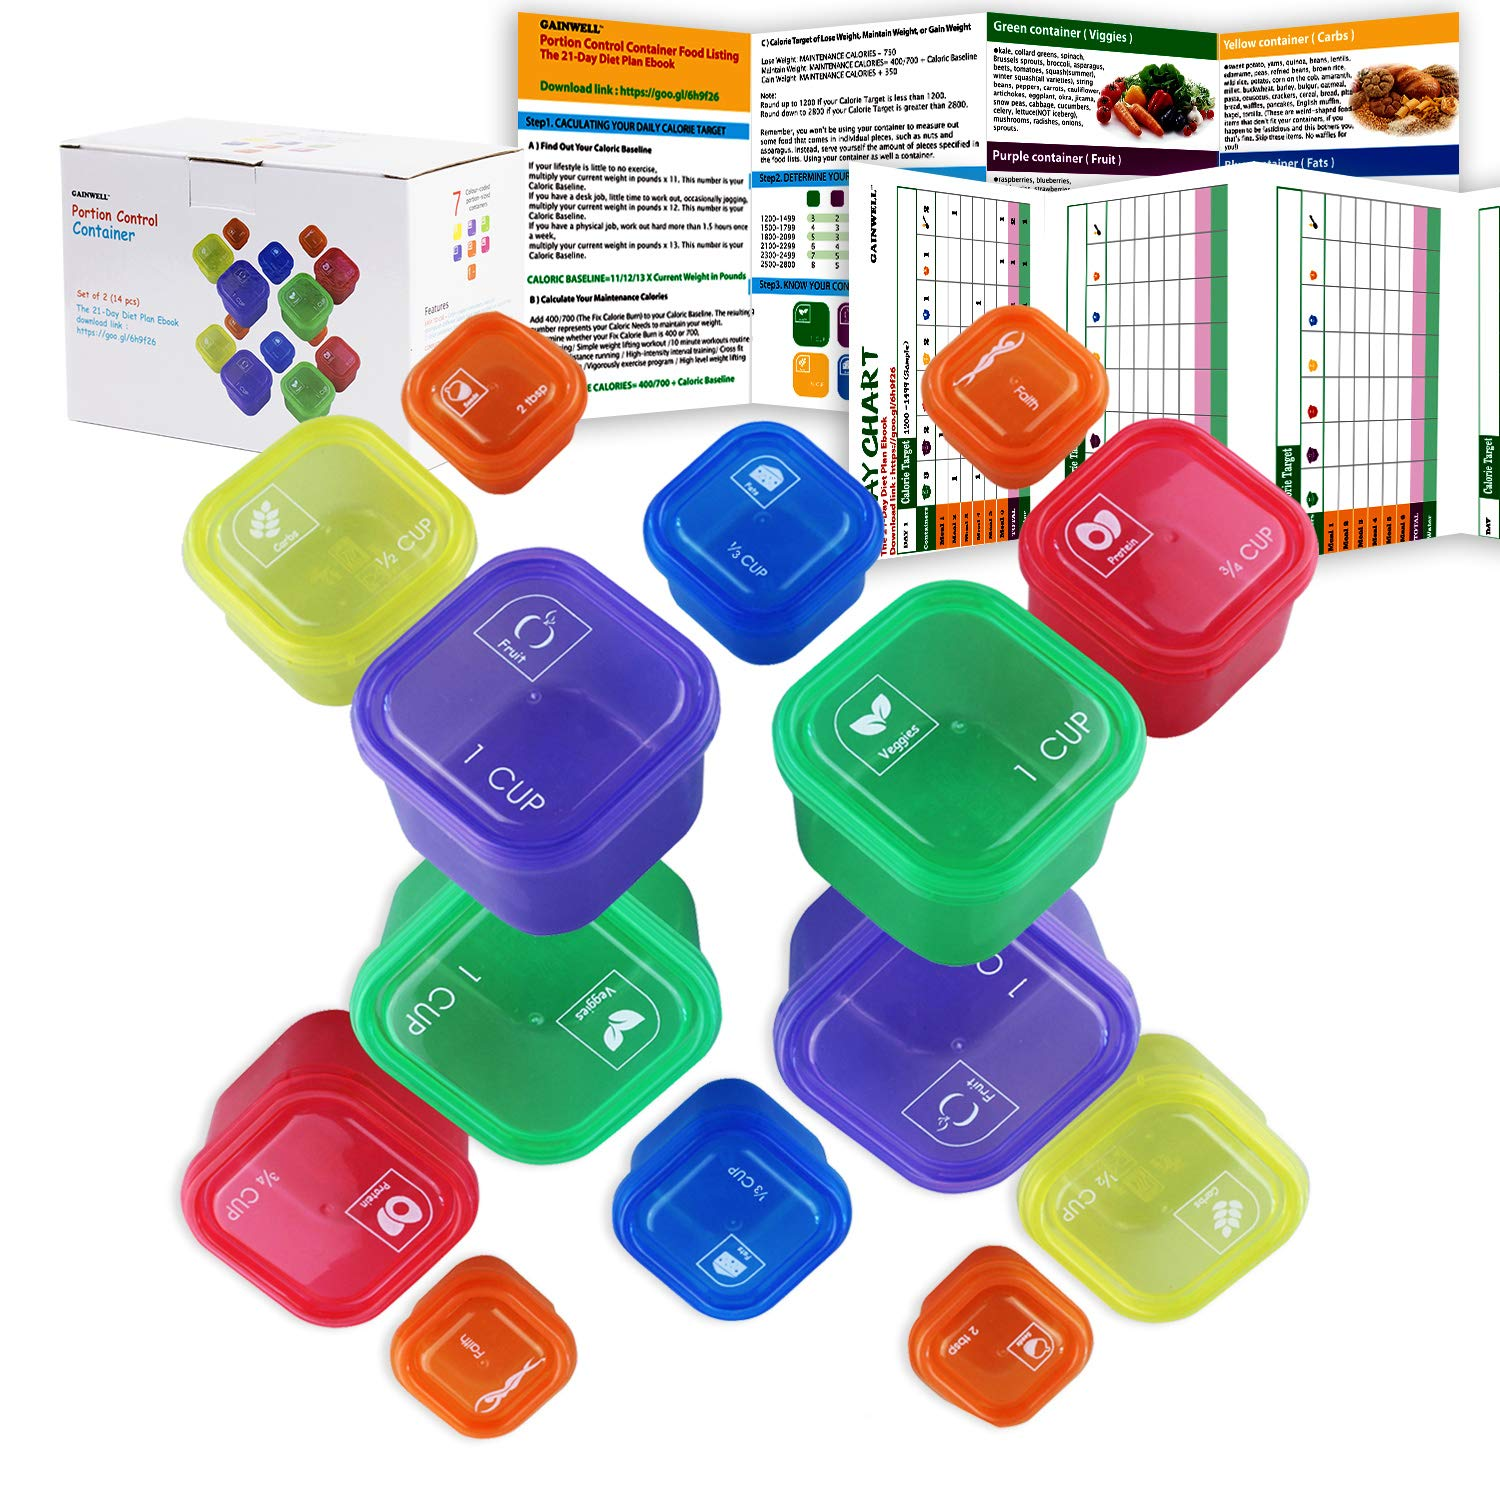 7 Piece Portion Control Container Set for Weight Loss - Portion Control Kit for Diet Meal Preparation - Comparable to 21 Day Fix - GAINWELL 0010